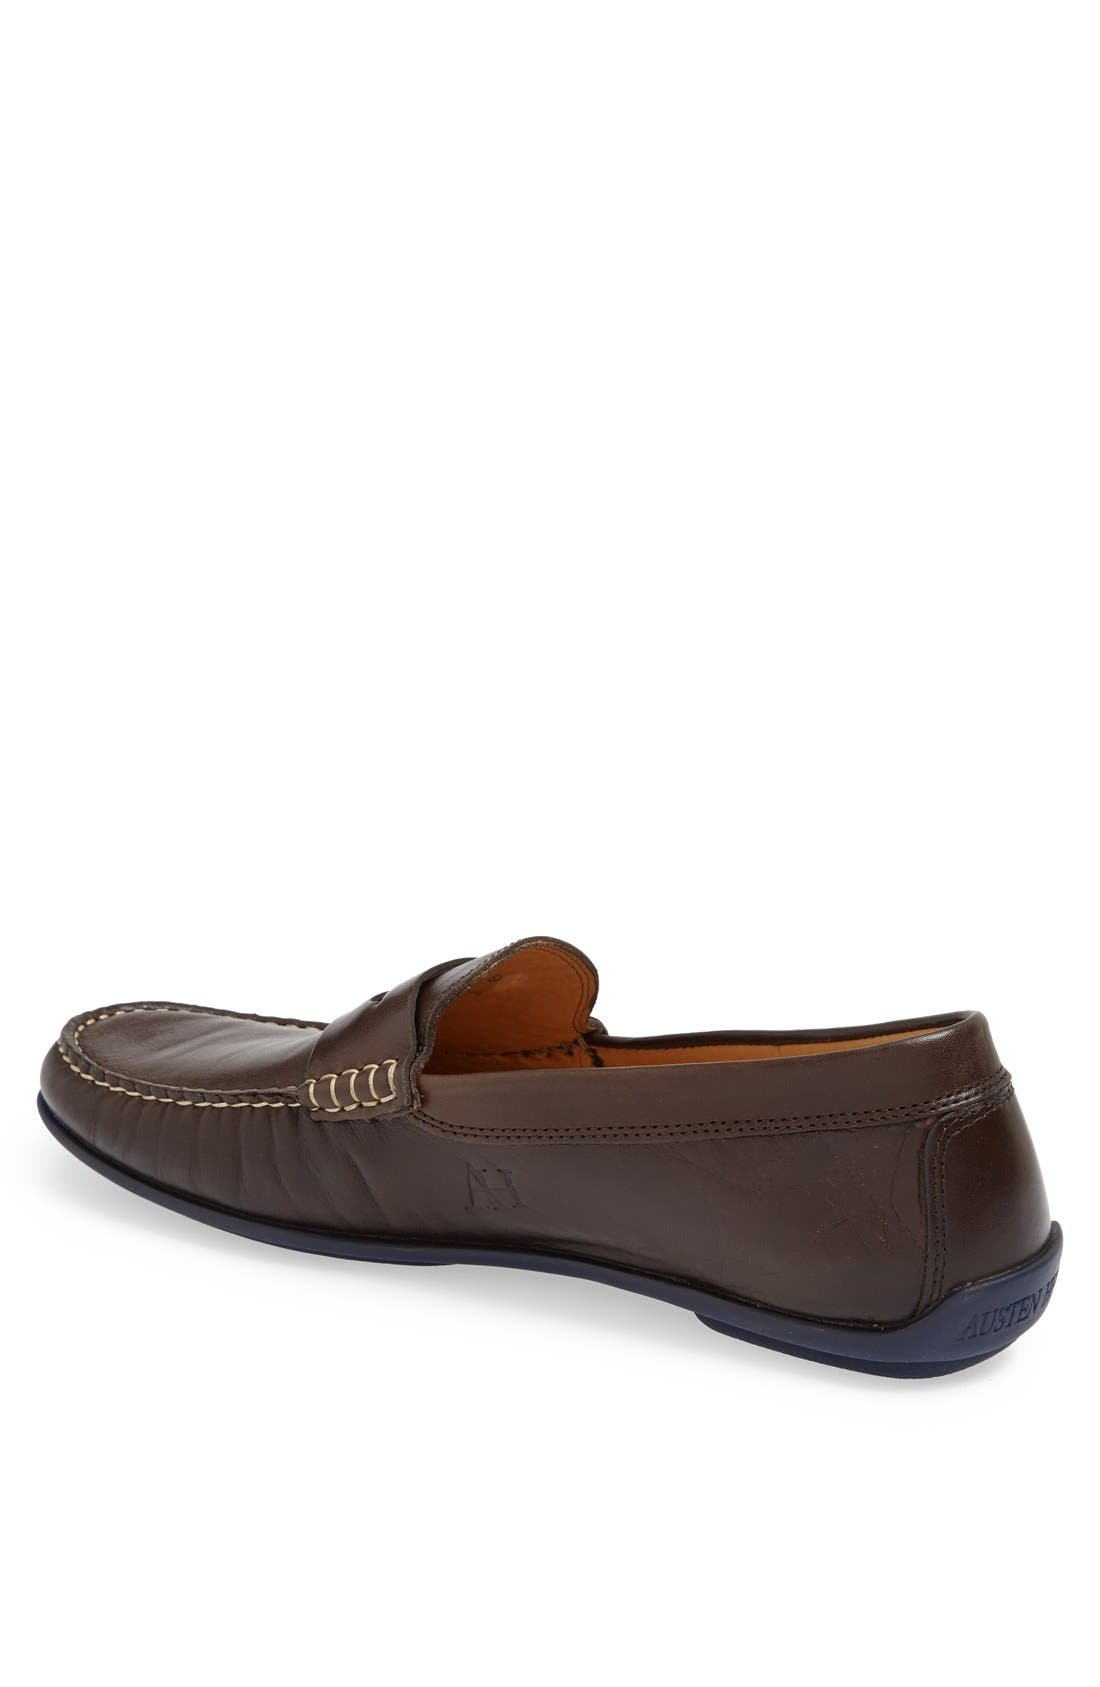 'Strattons' Driving Shoe,                             Alternate thumbnail 7, color,                             BROWN LEATHER/ NAVY